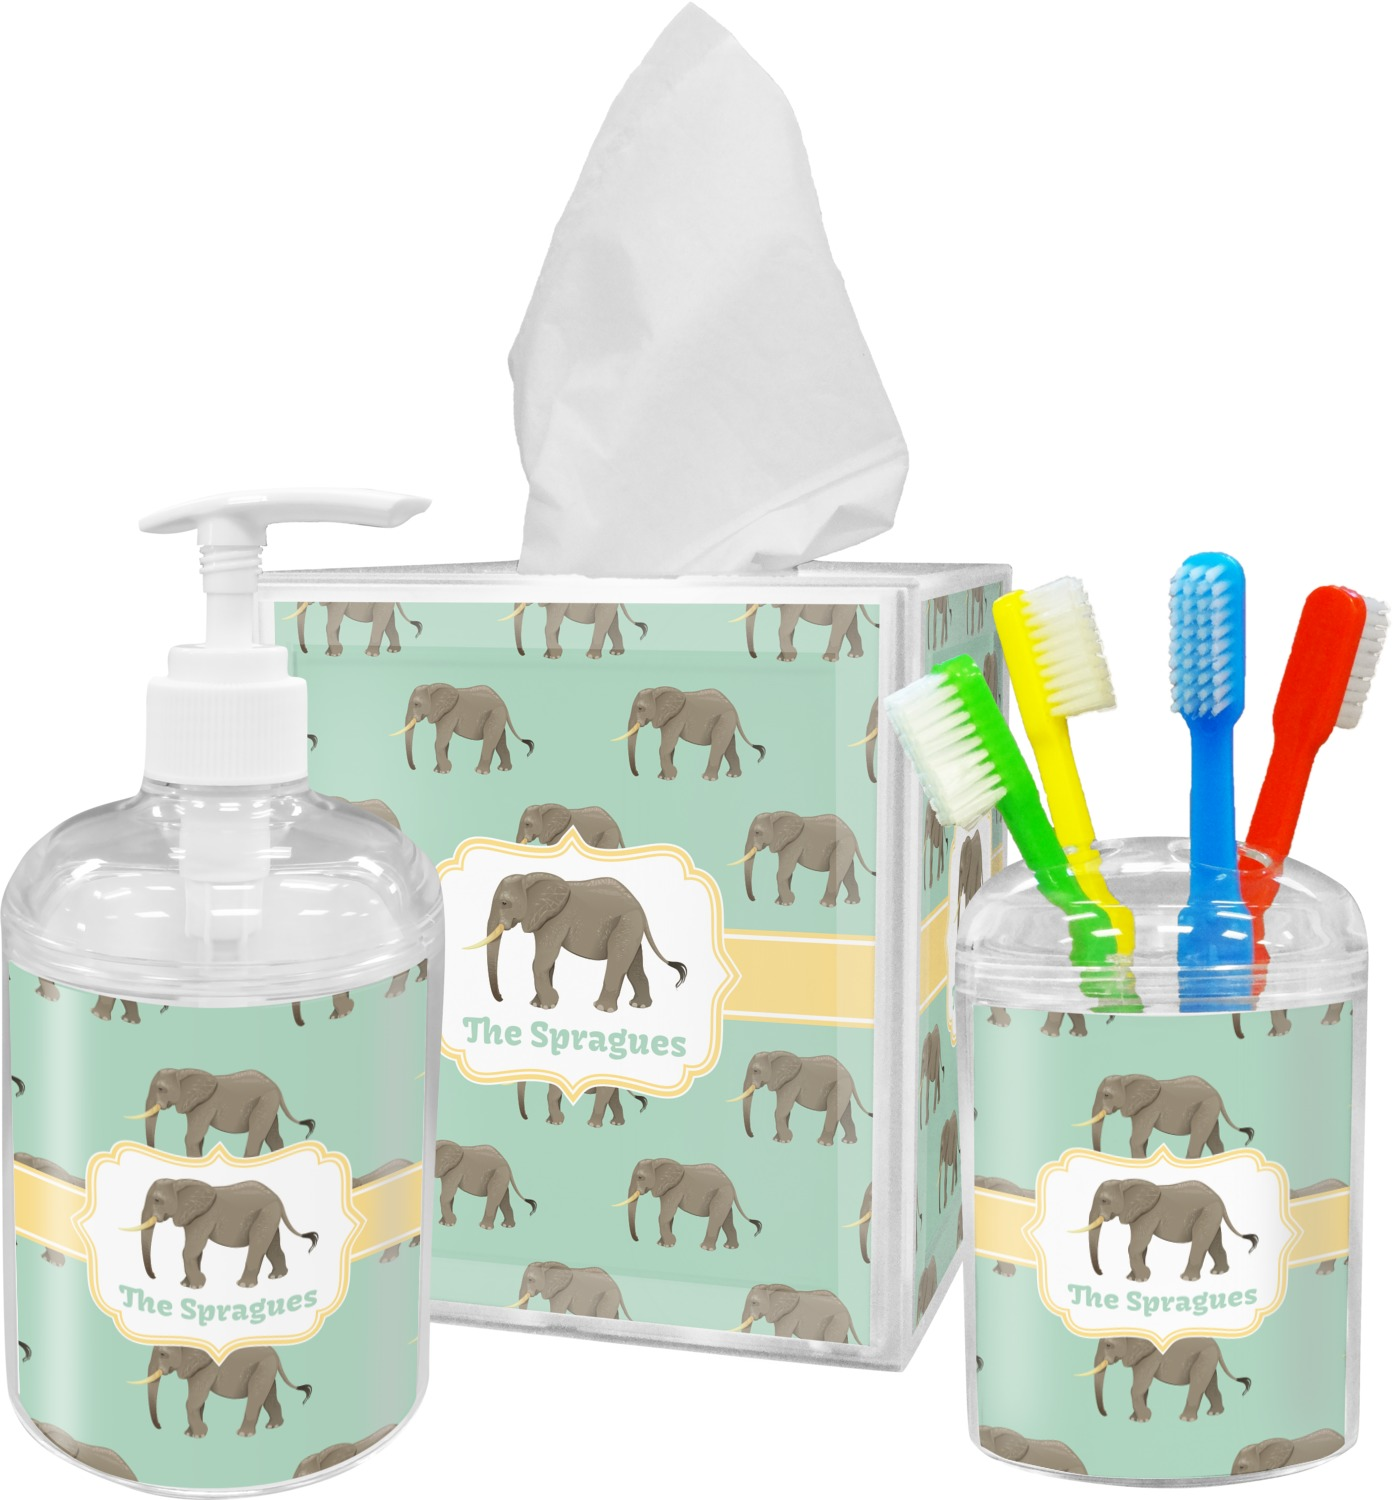 Elephant bathroom accessories set personalized - Monogrammed bathroom accessories ...